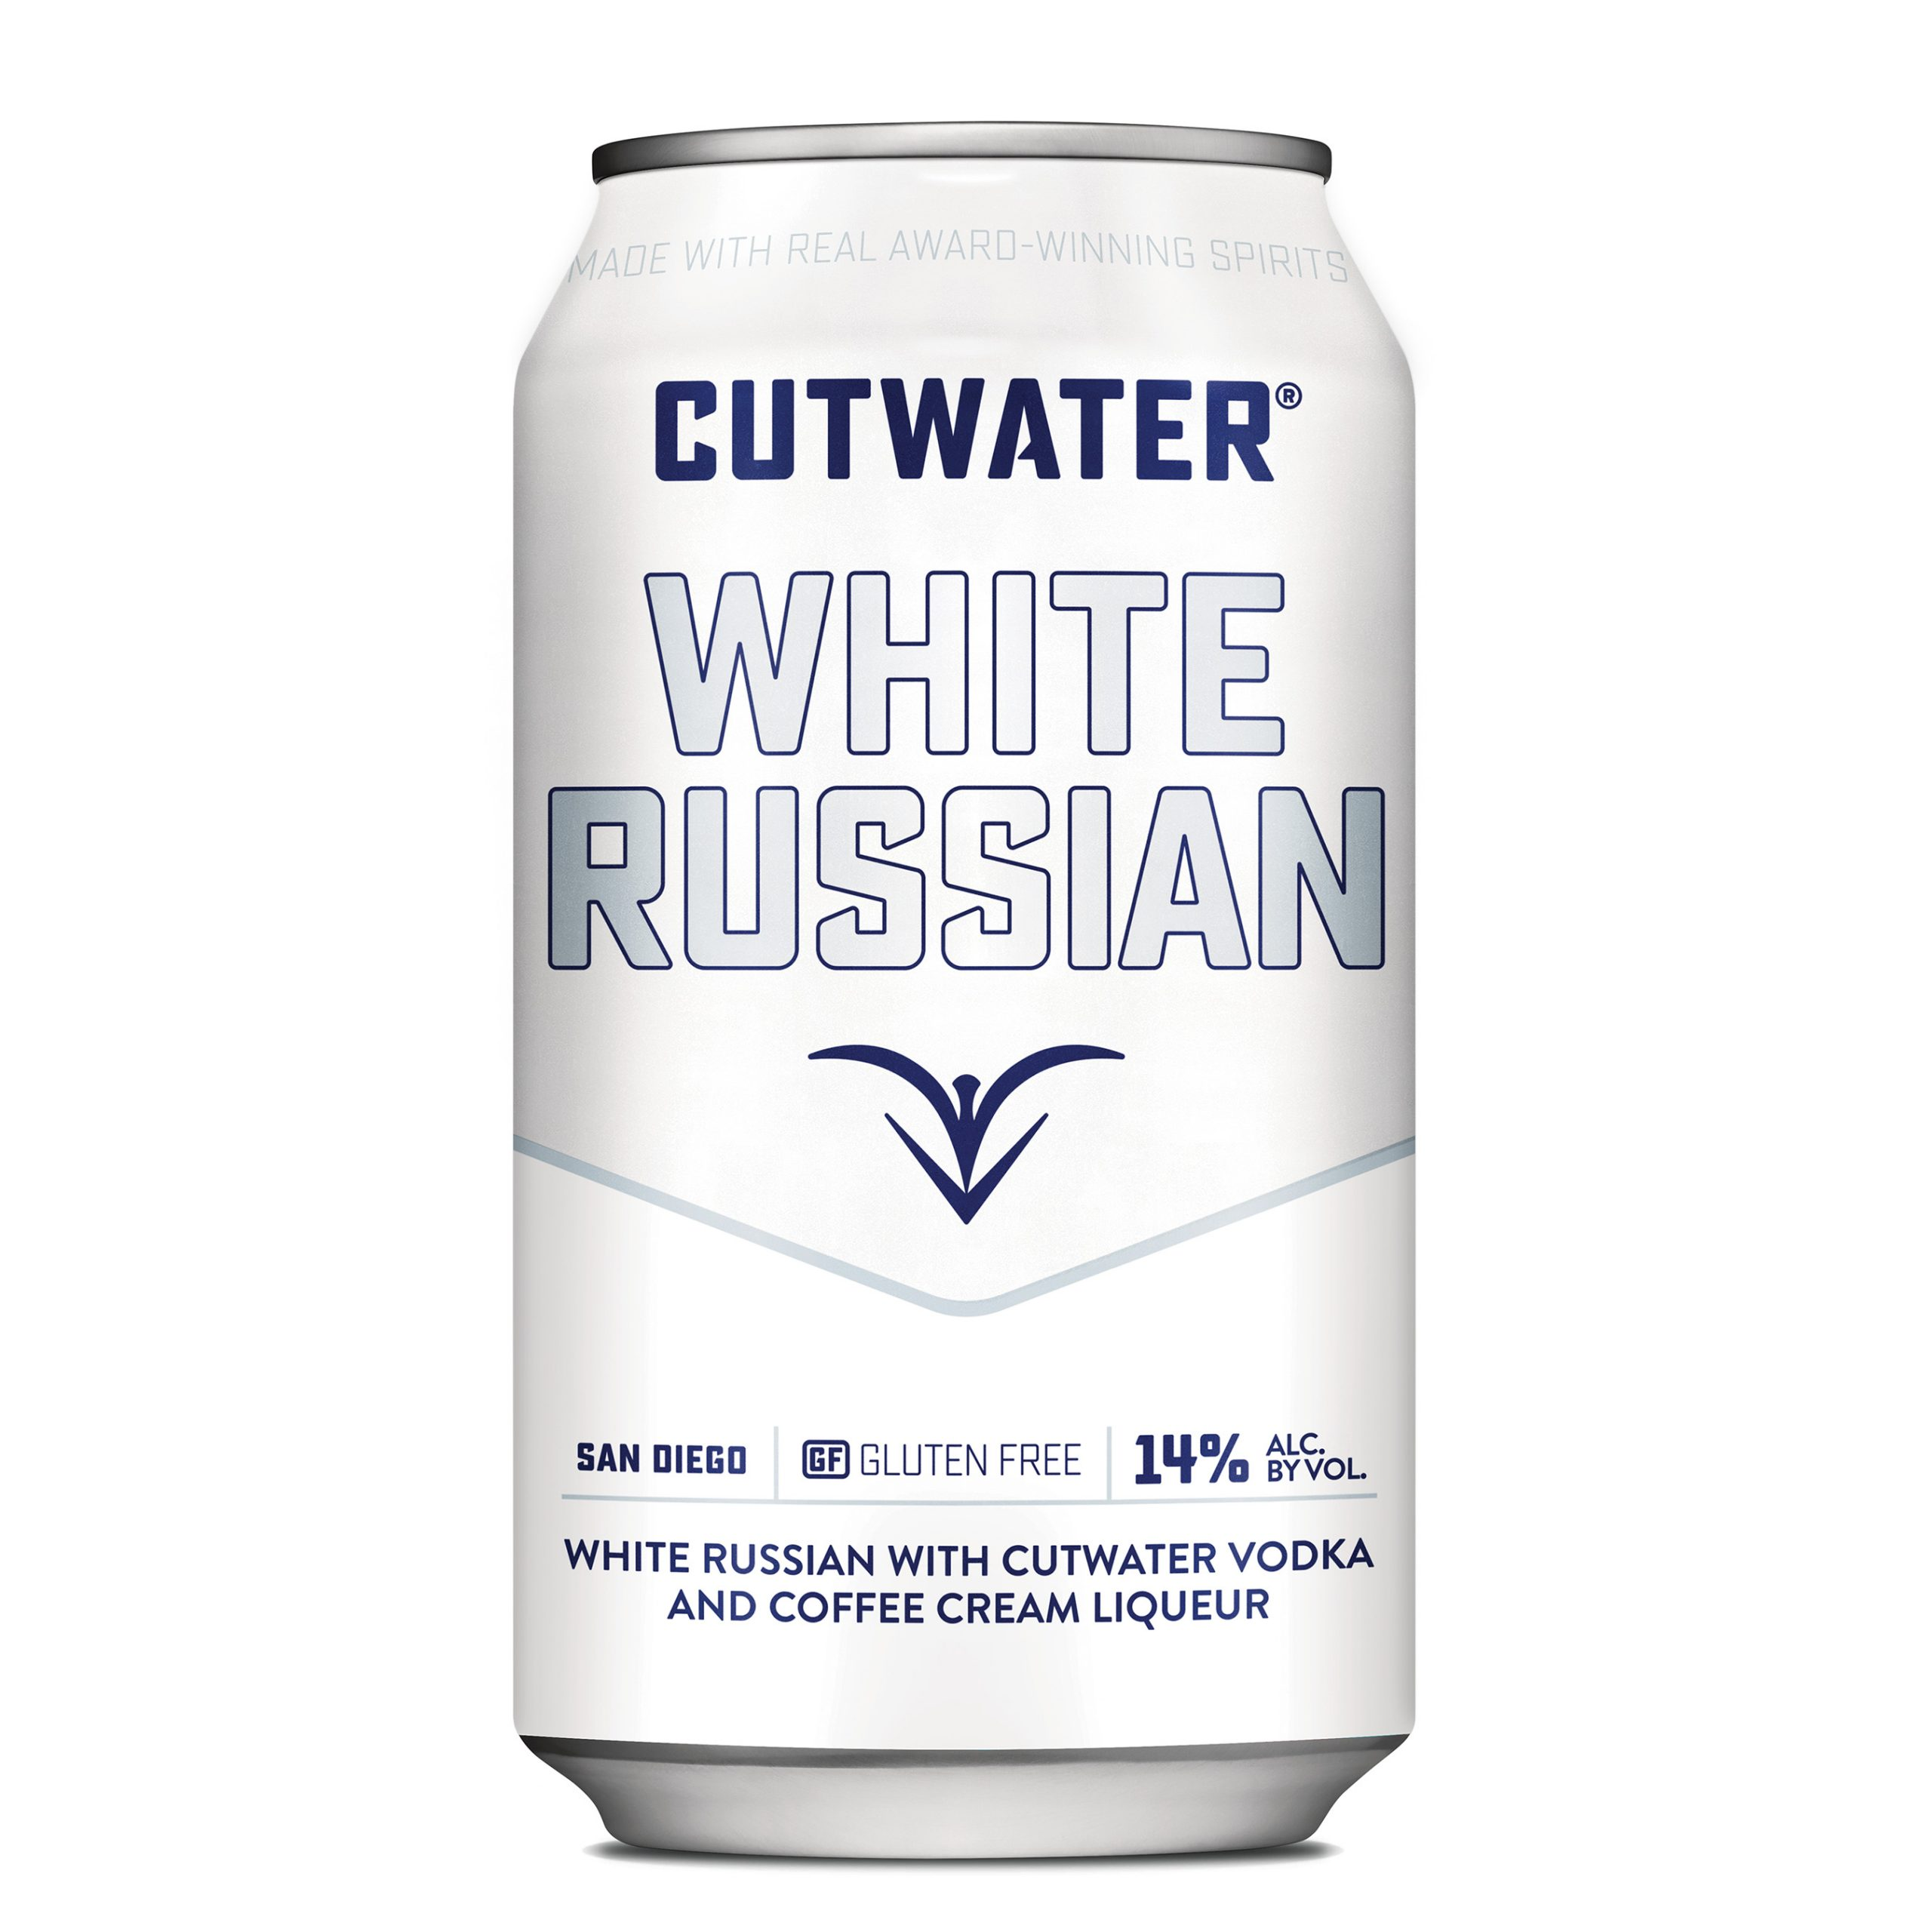 Cutwater, White Russian